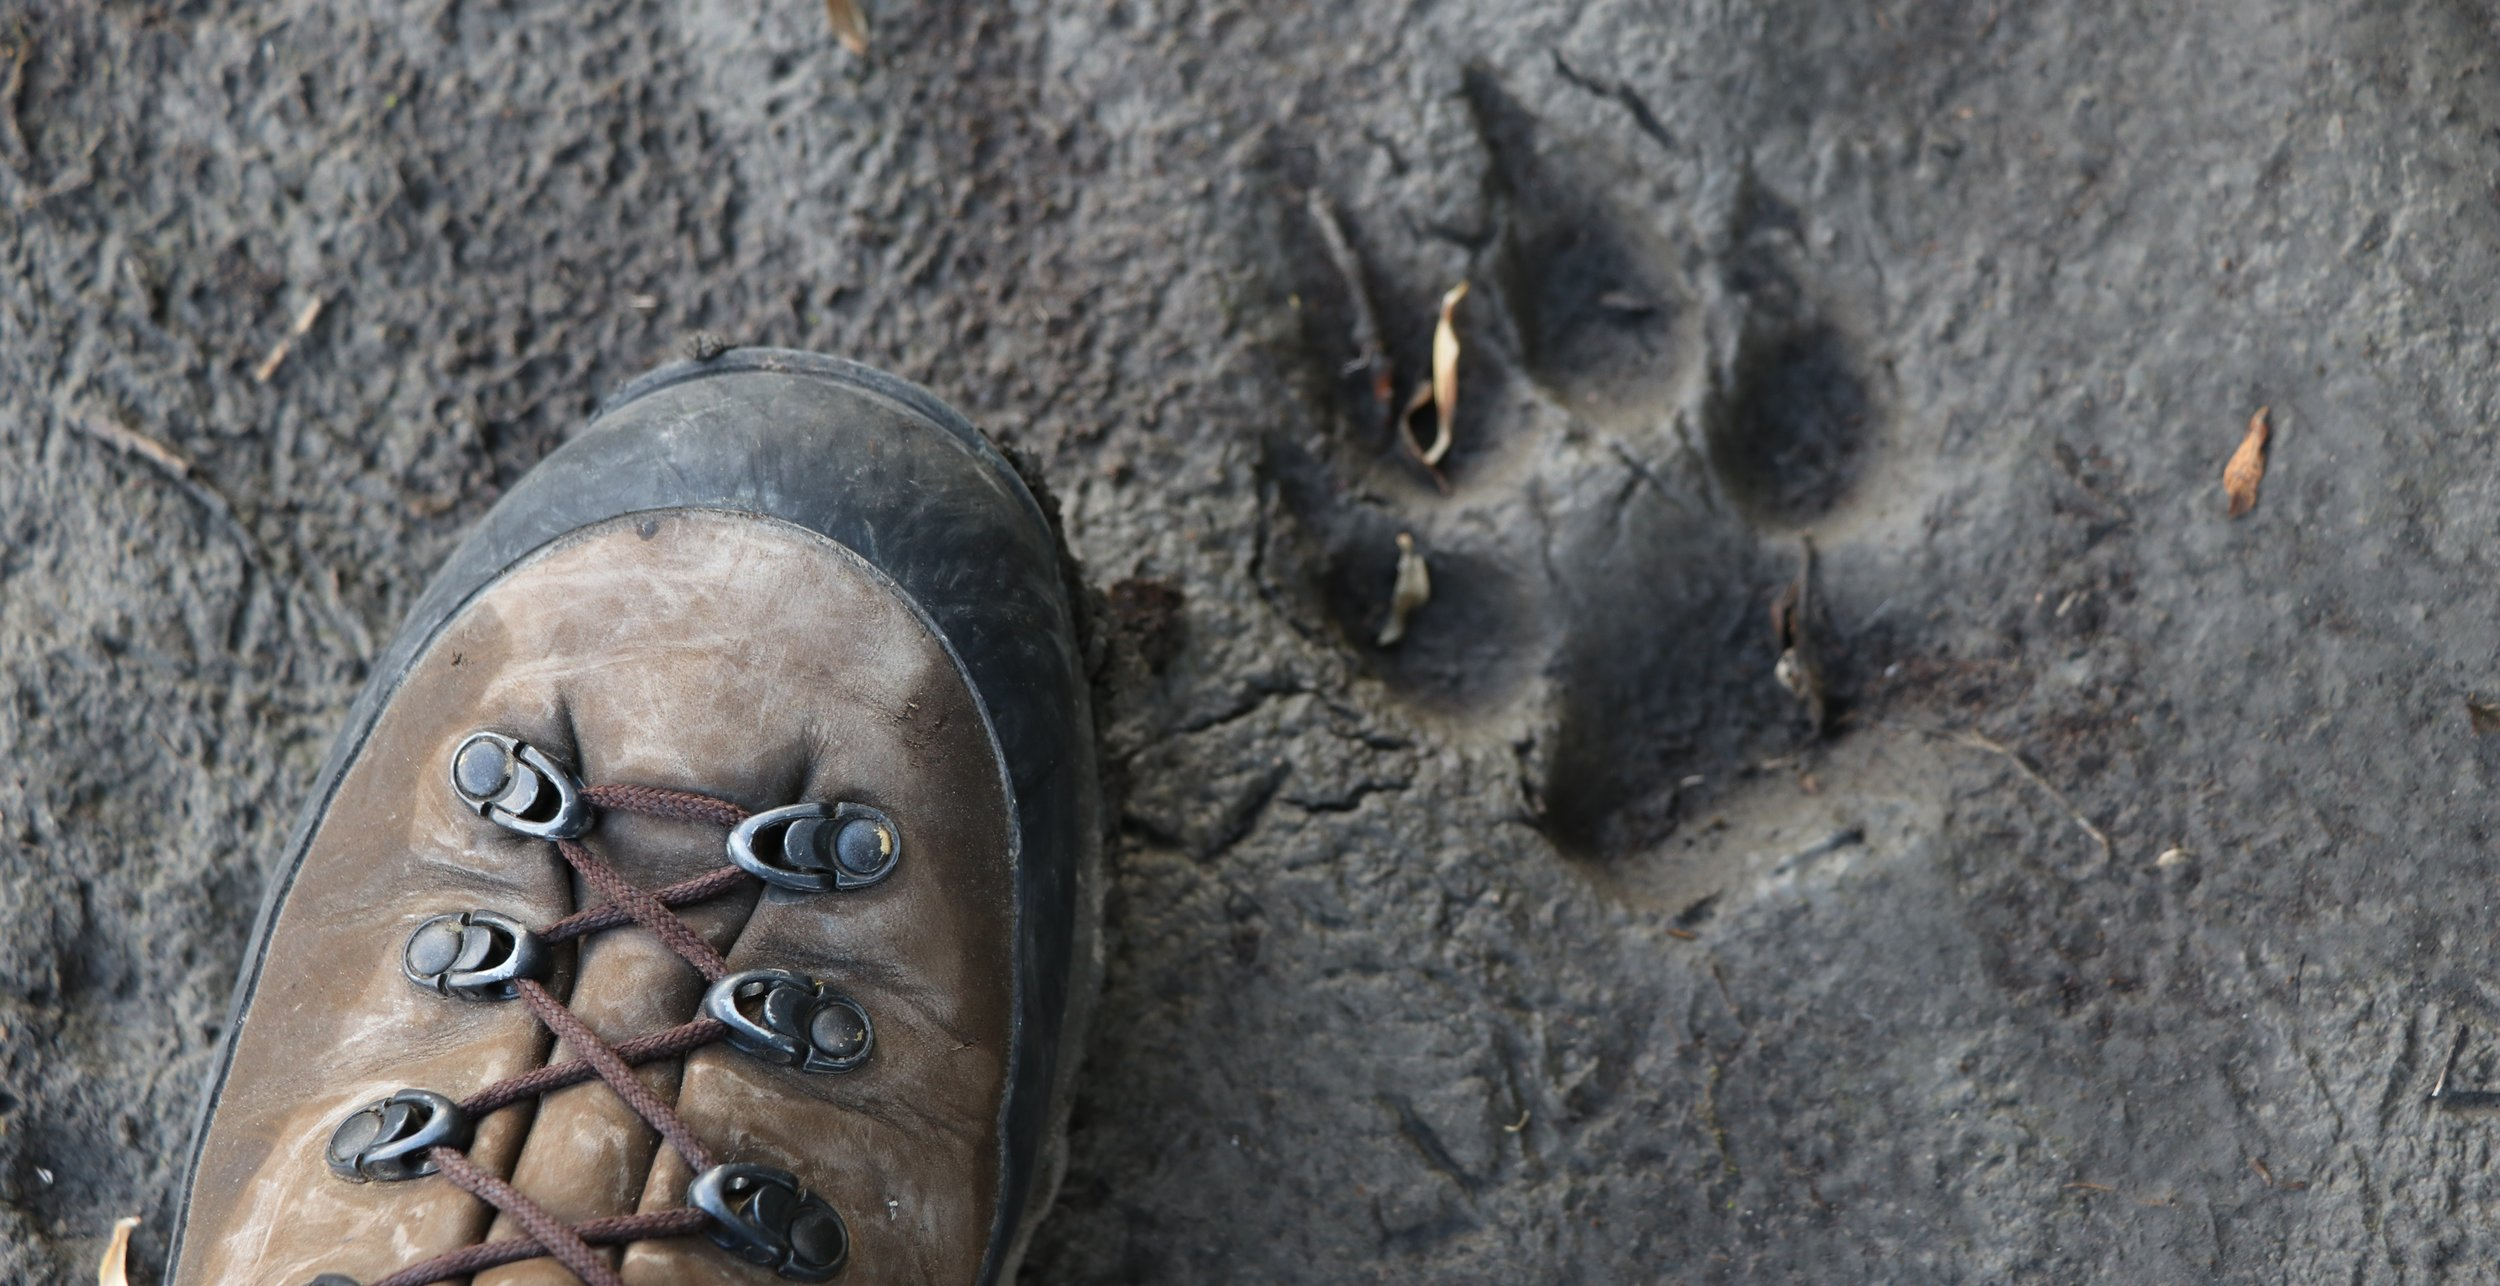 Good boots stay comfortable wet or dry. Here's my damp foot next to a wolf print.